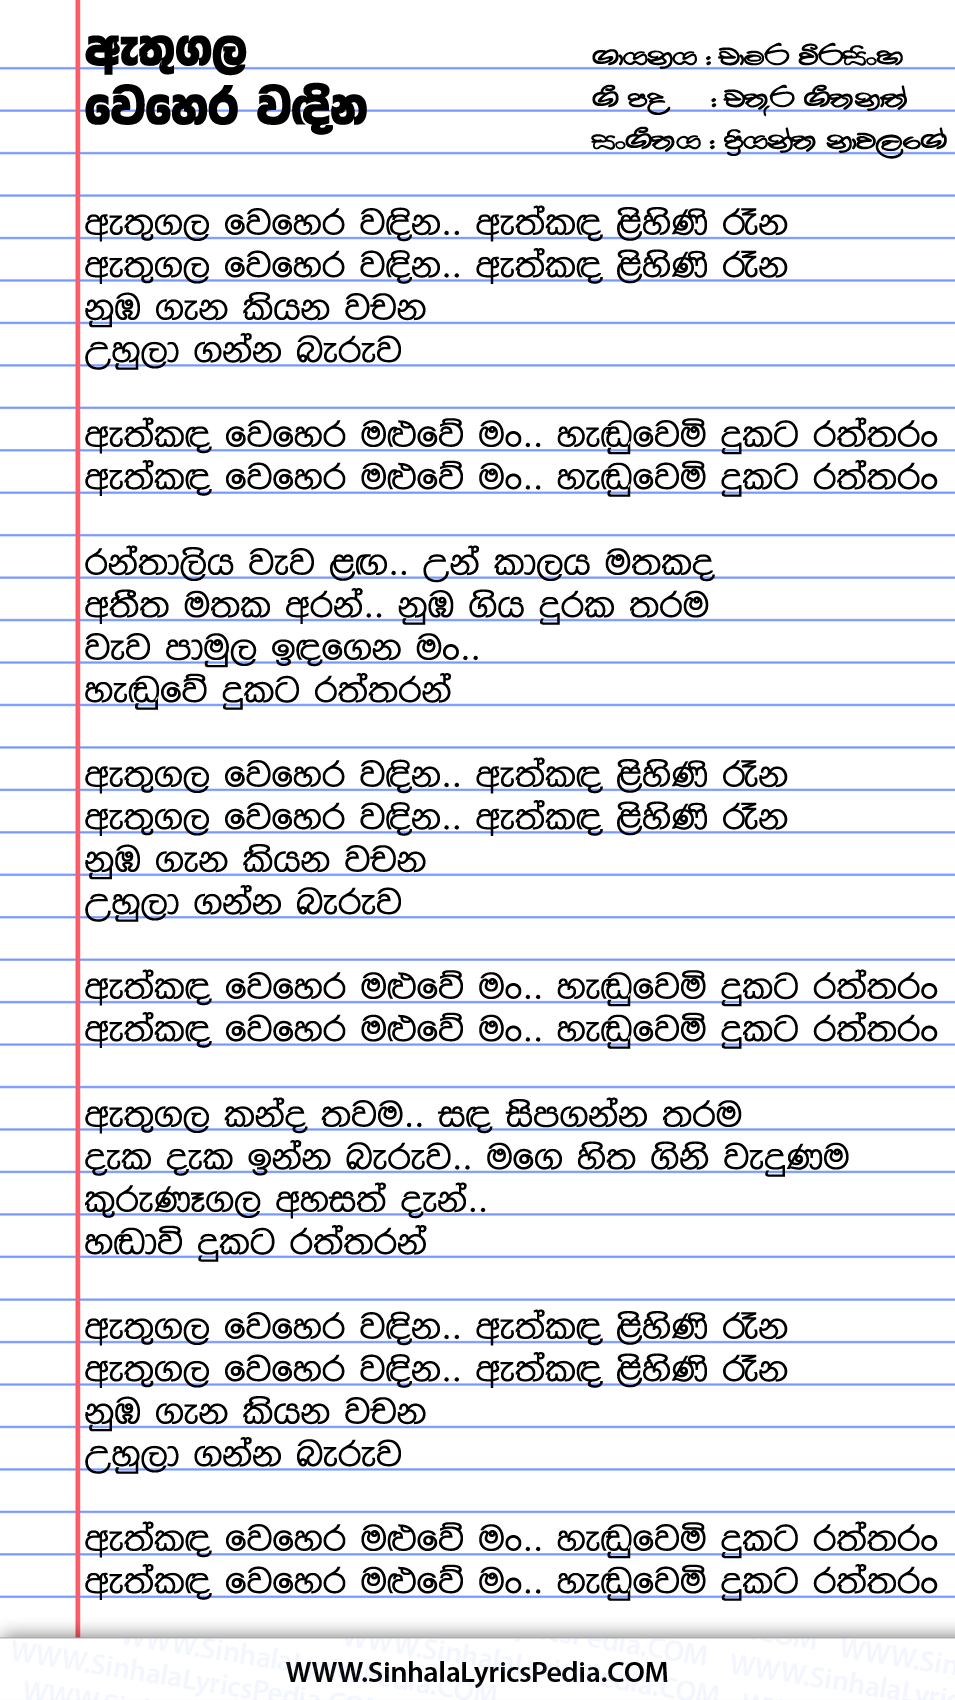 Athugala Wehera Wadina Song Lyrics